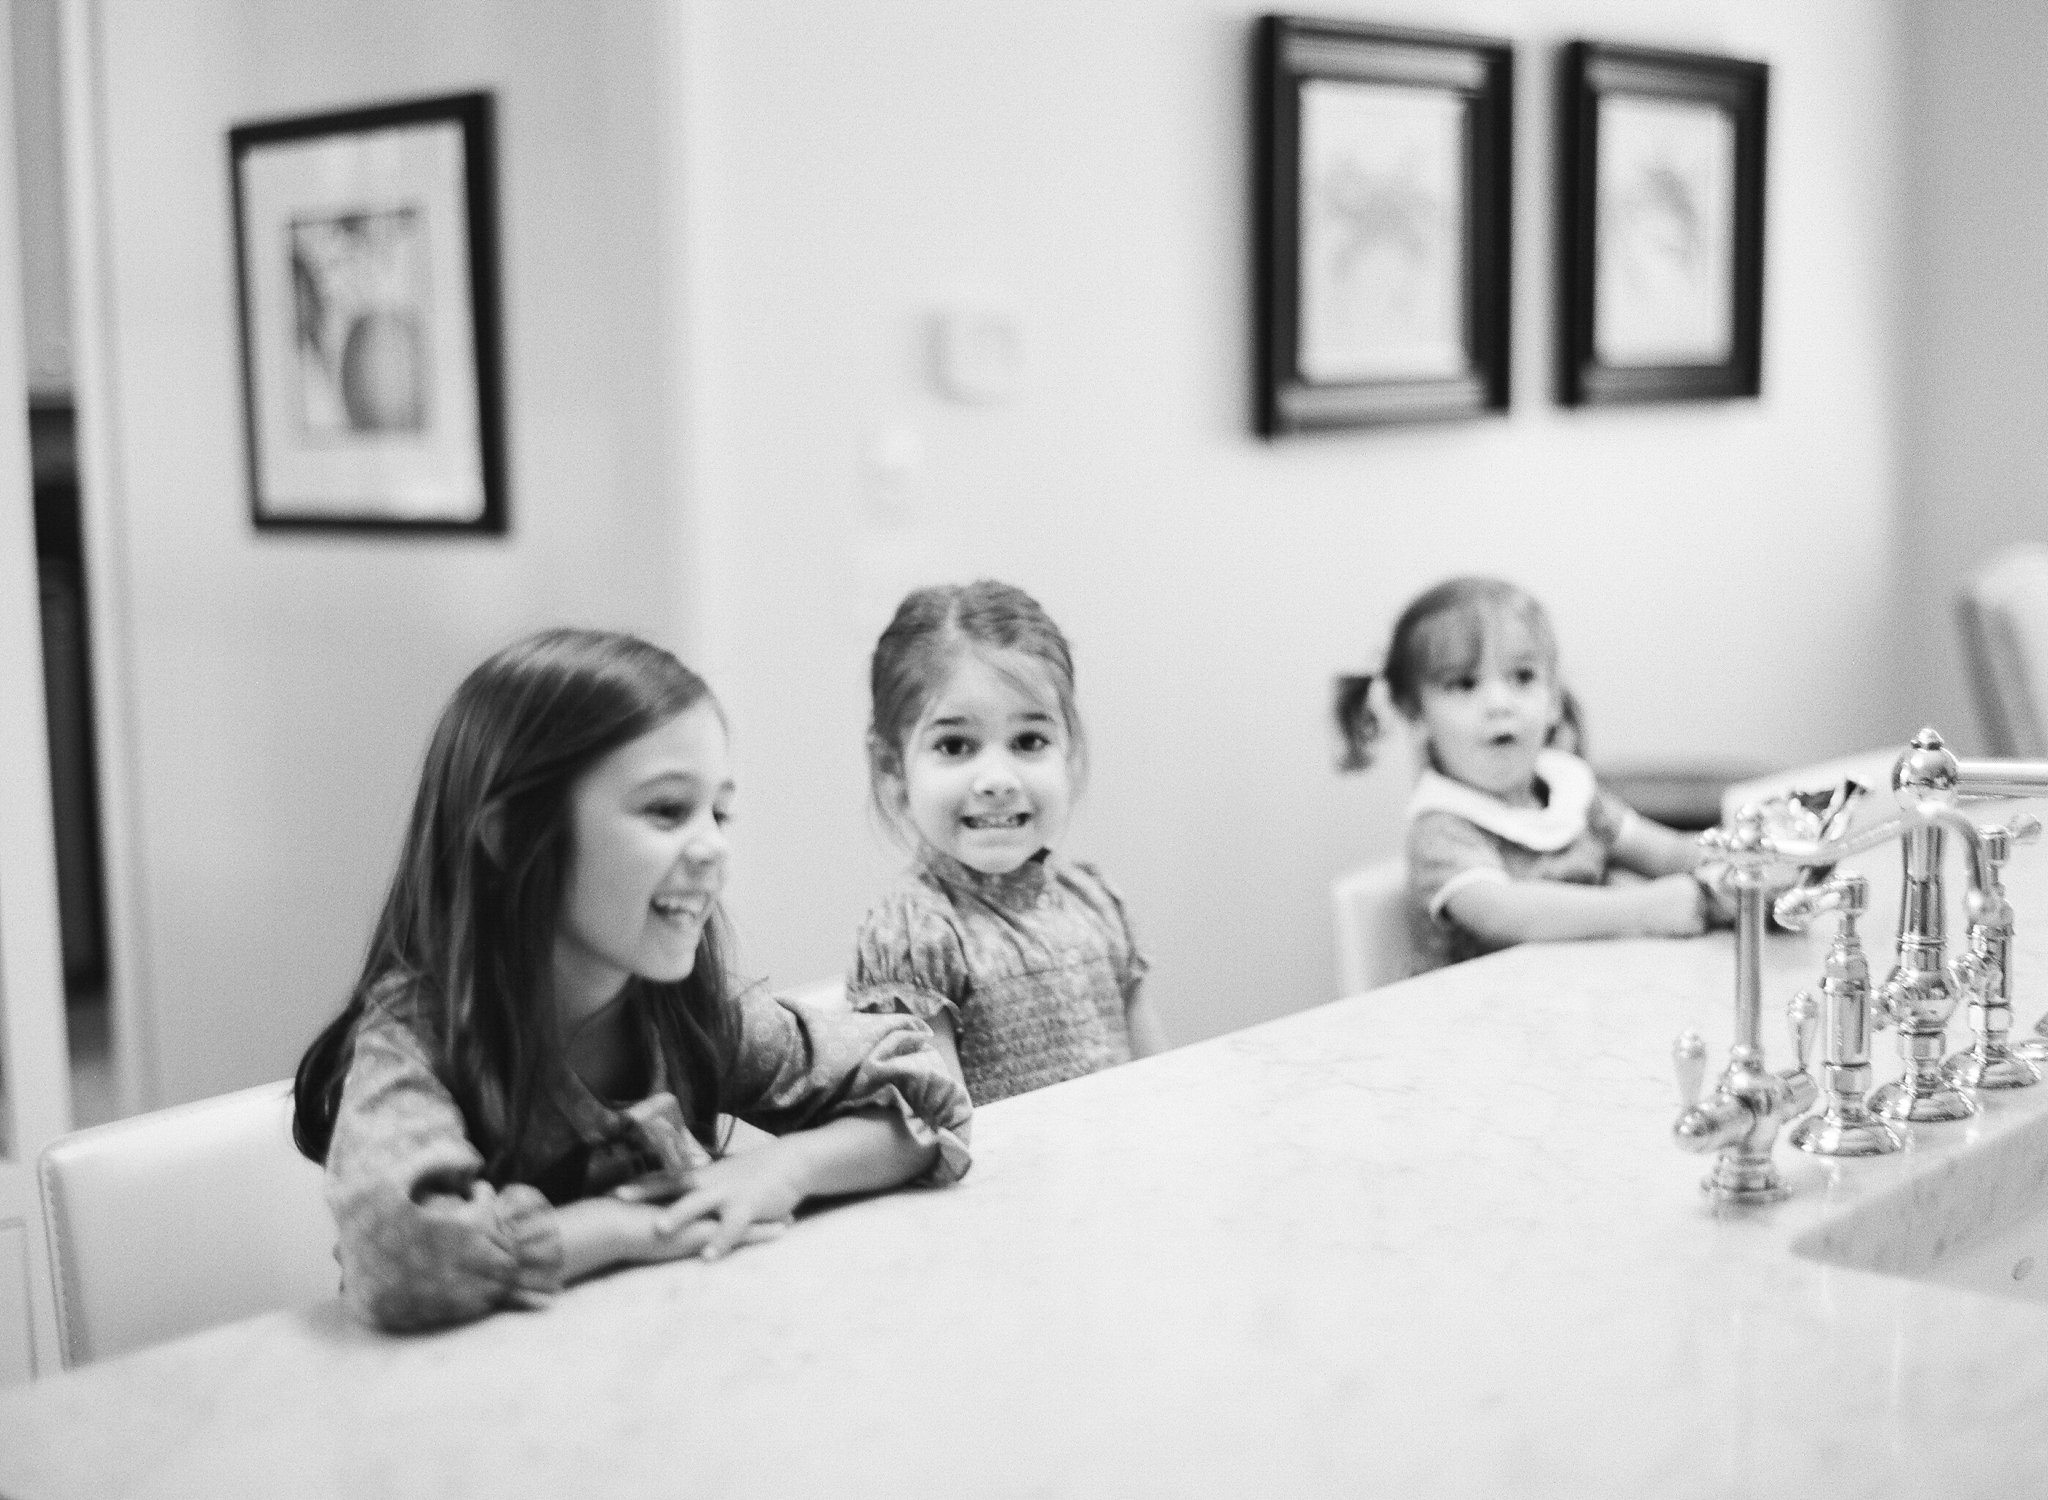 tallahassee family photographer shannon griffin photography_0031.jpg